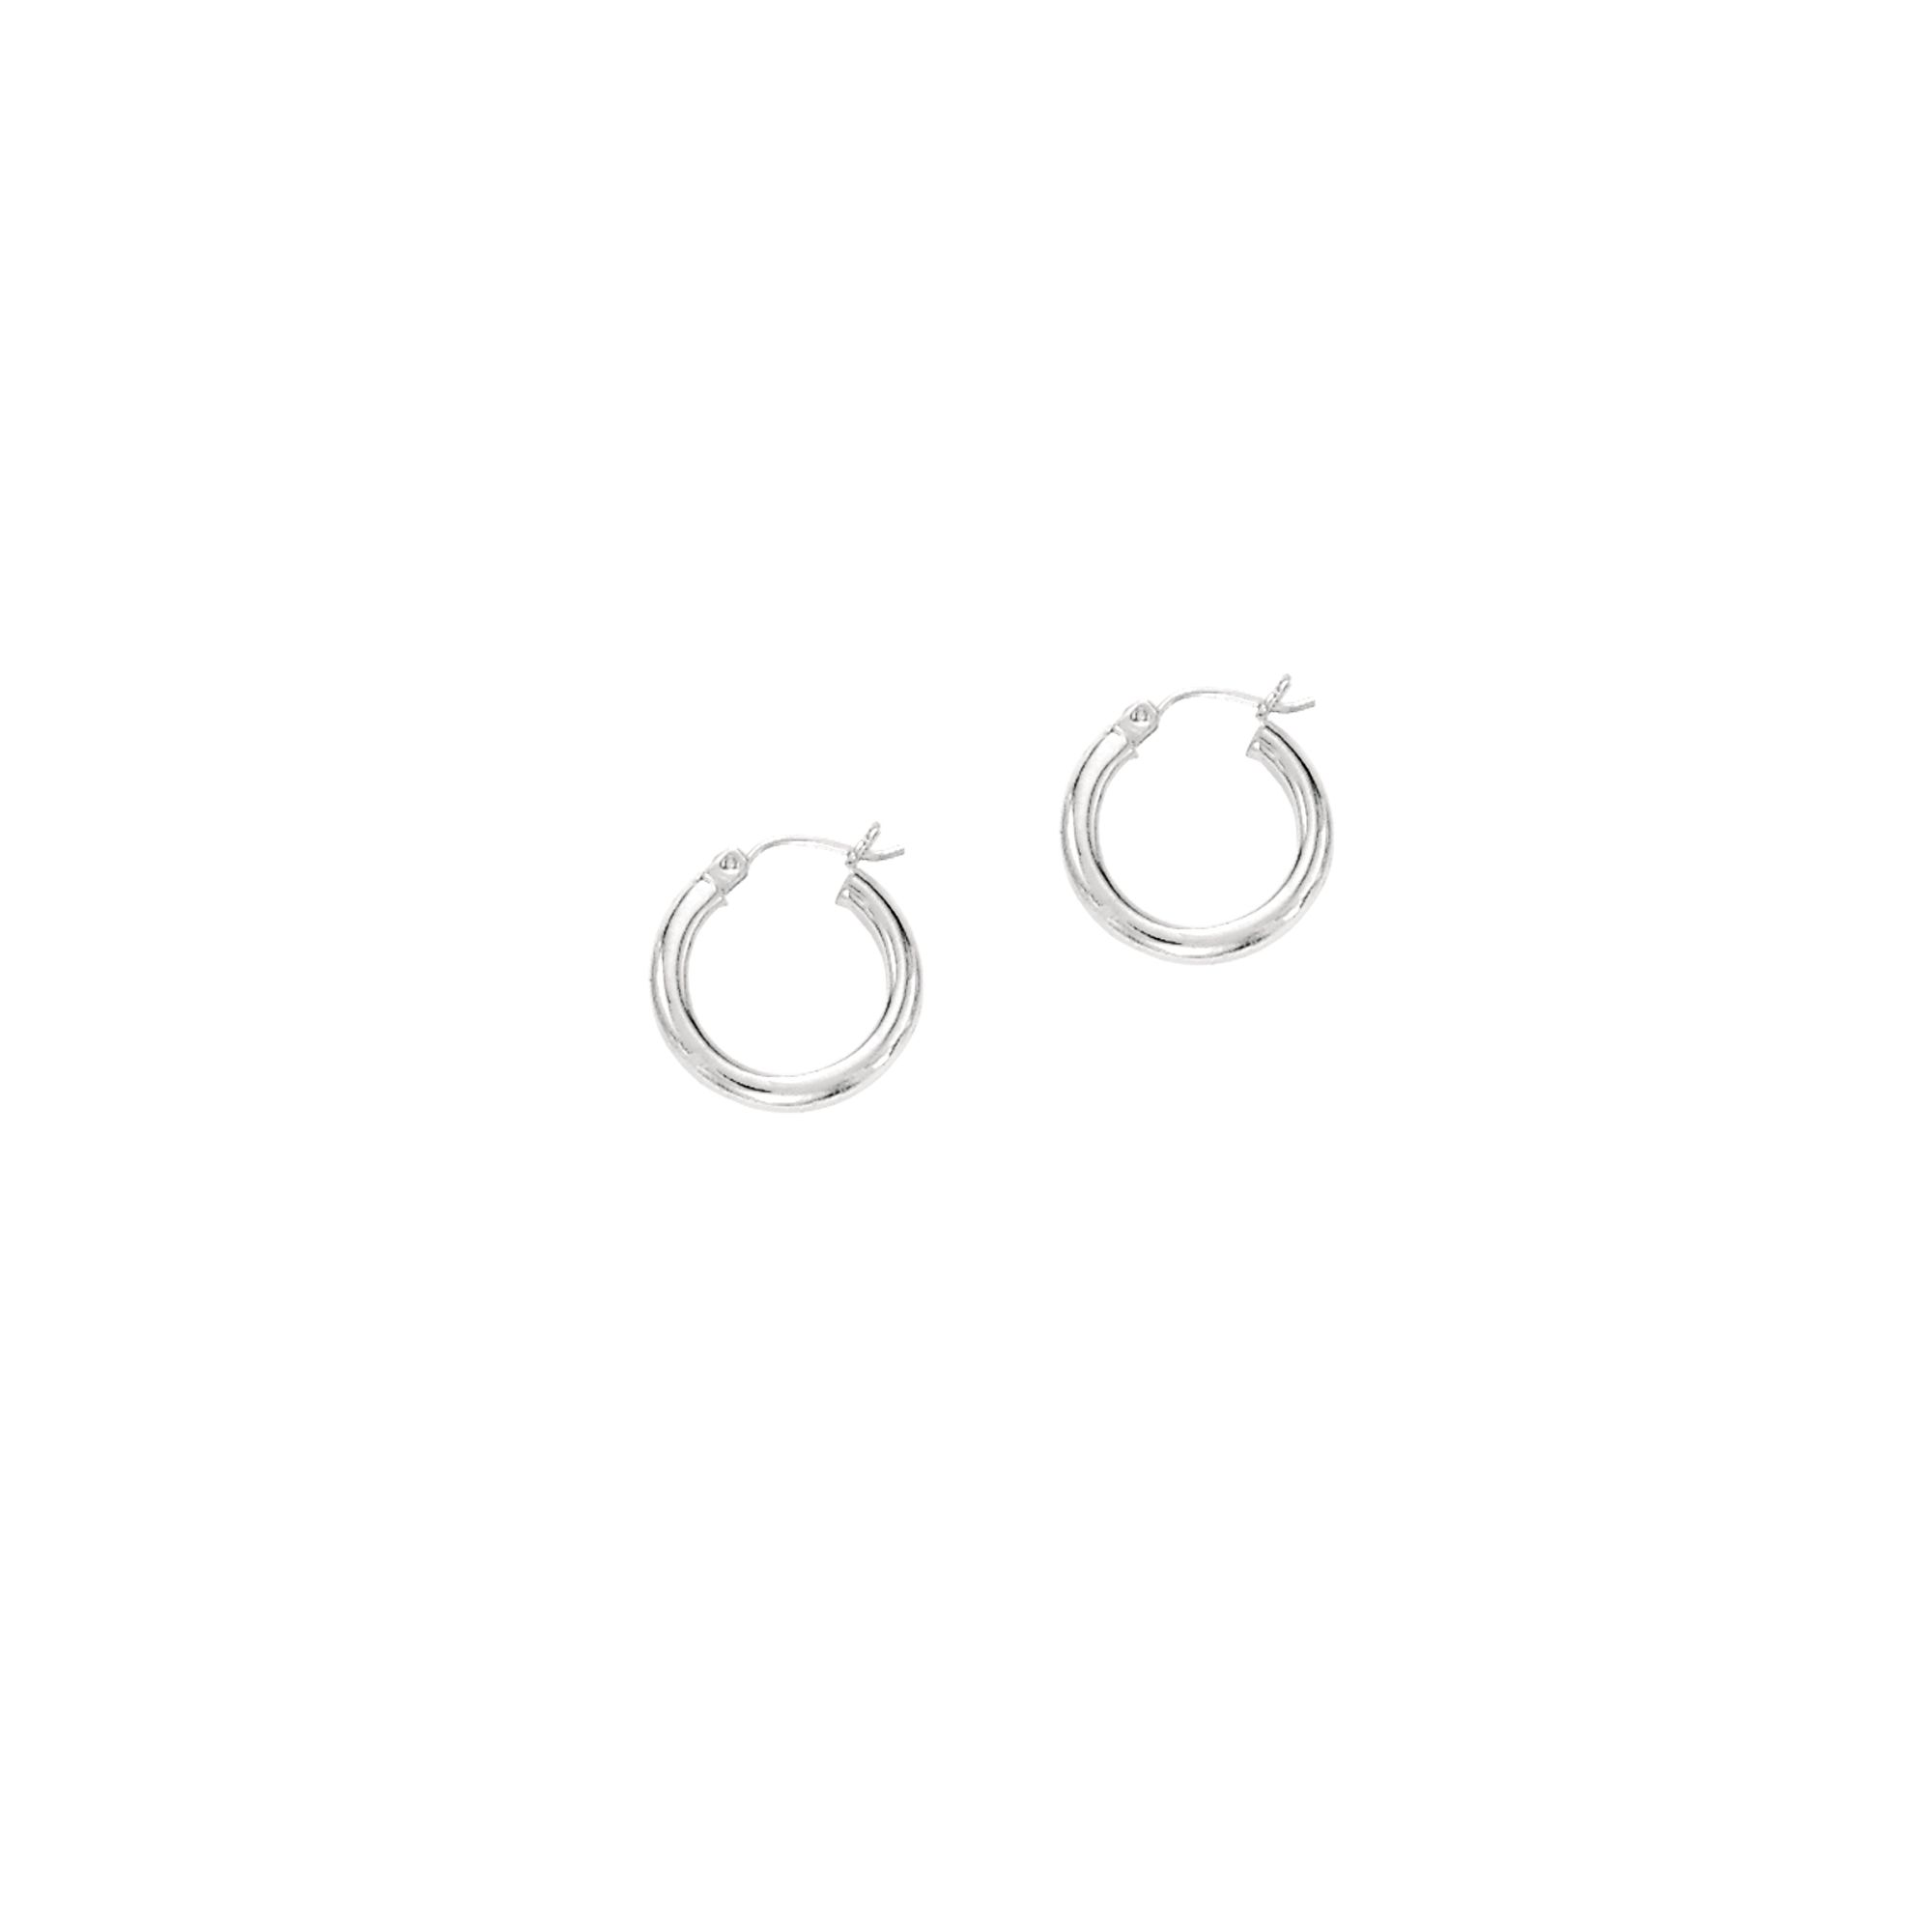 14K Yellow Gold Shiny Diamond Cut Round Tube Design 3mm wide Hoop Earrings with Hinged by IcedTime